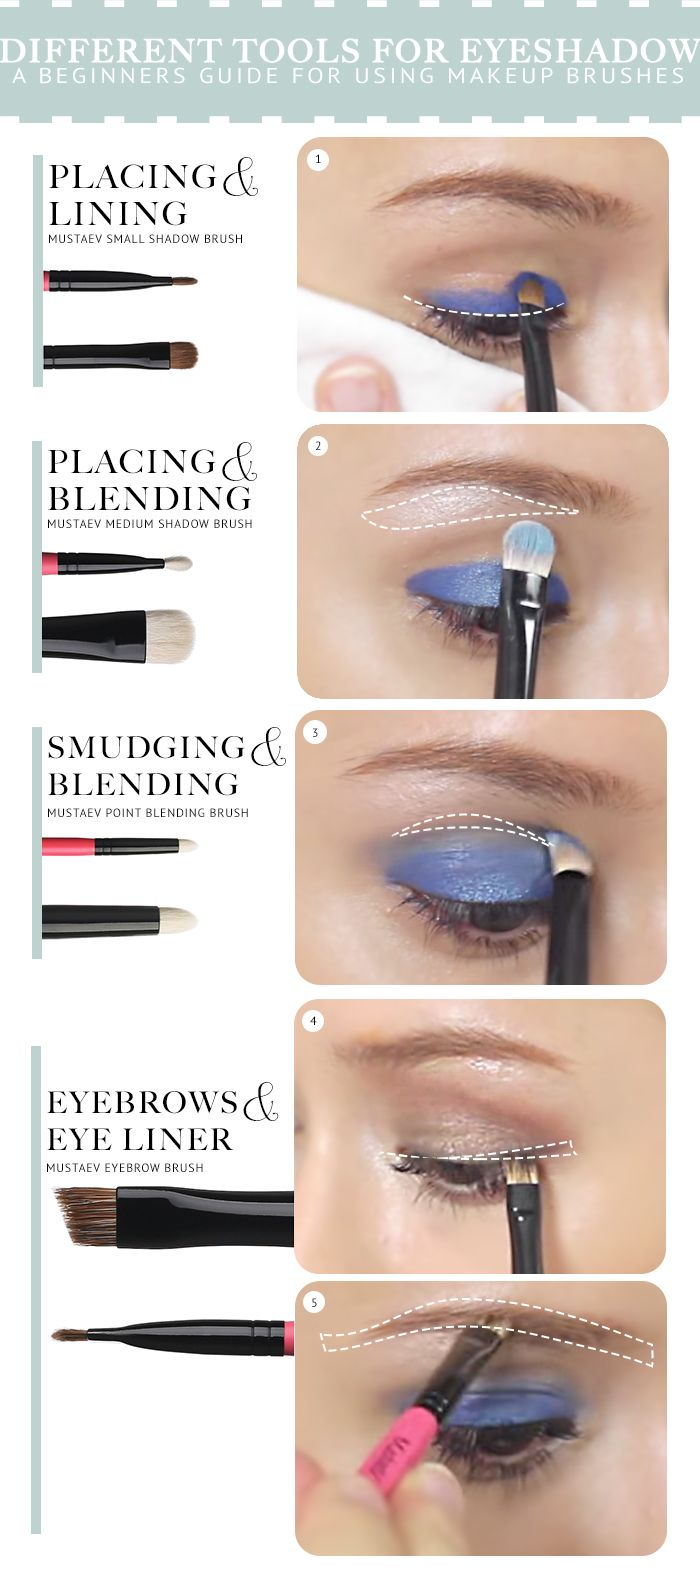 How to Apply Eyeshadow How to apply eyeshadow, Makeup